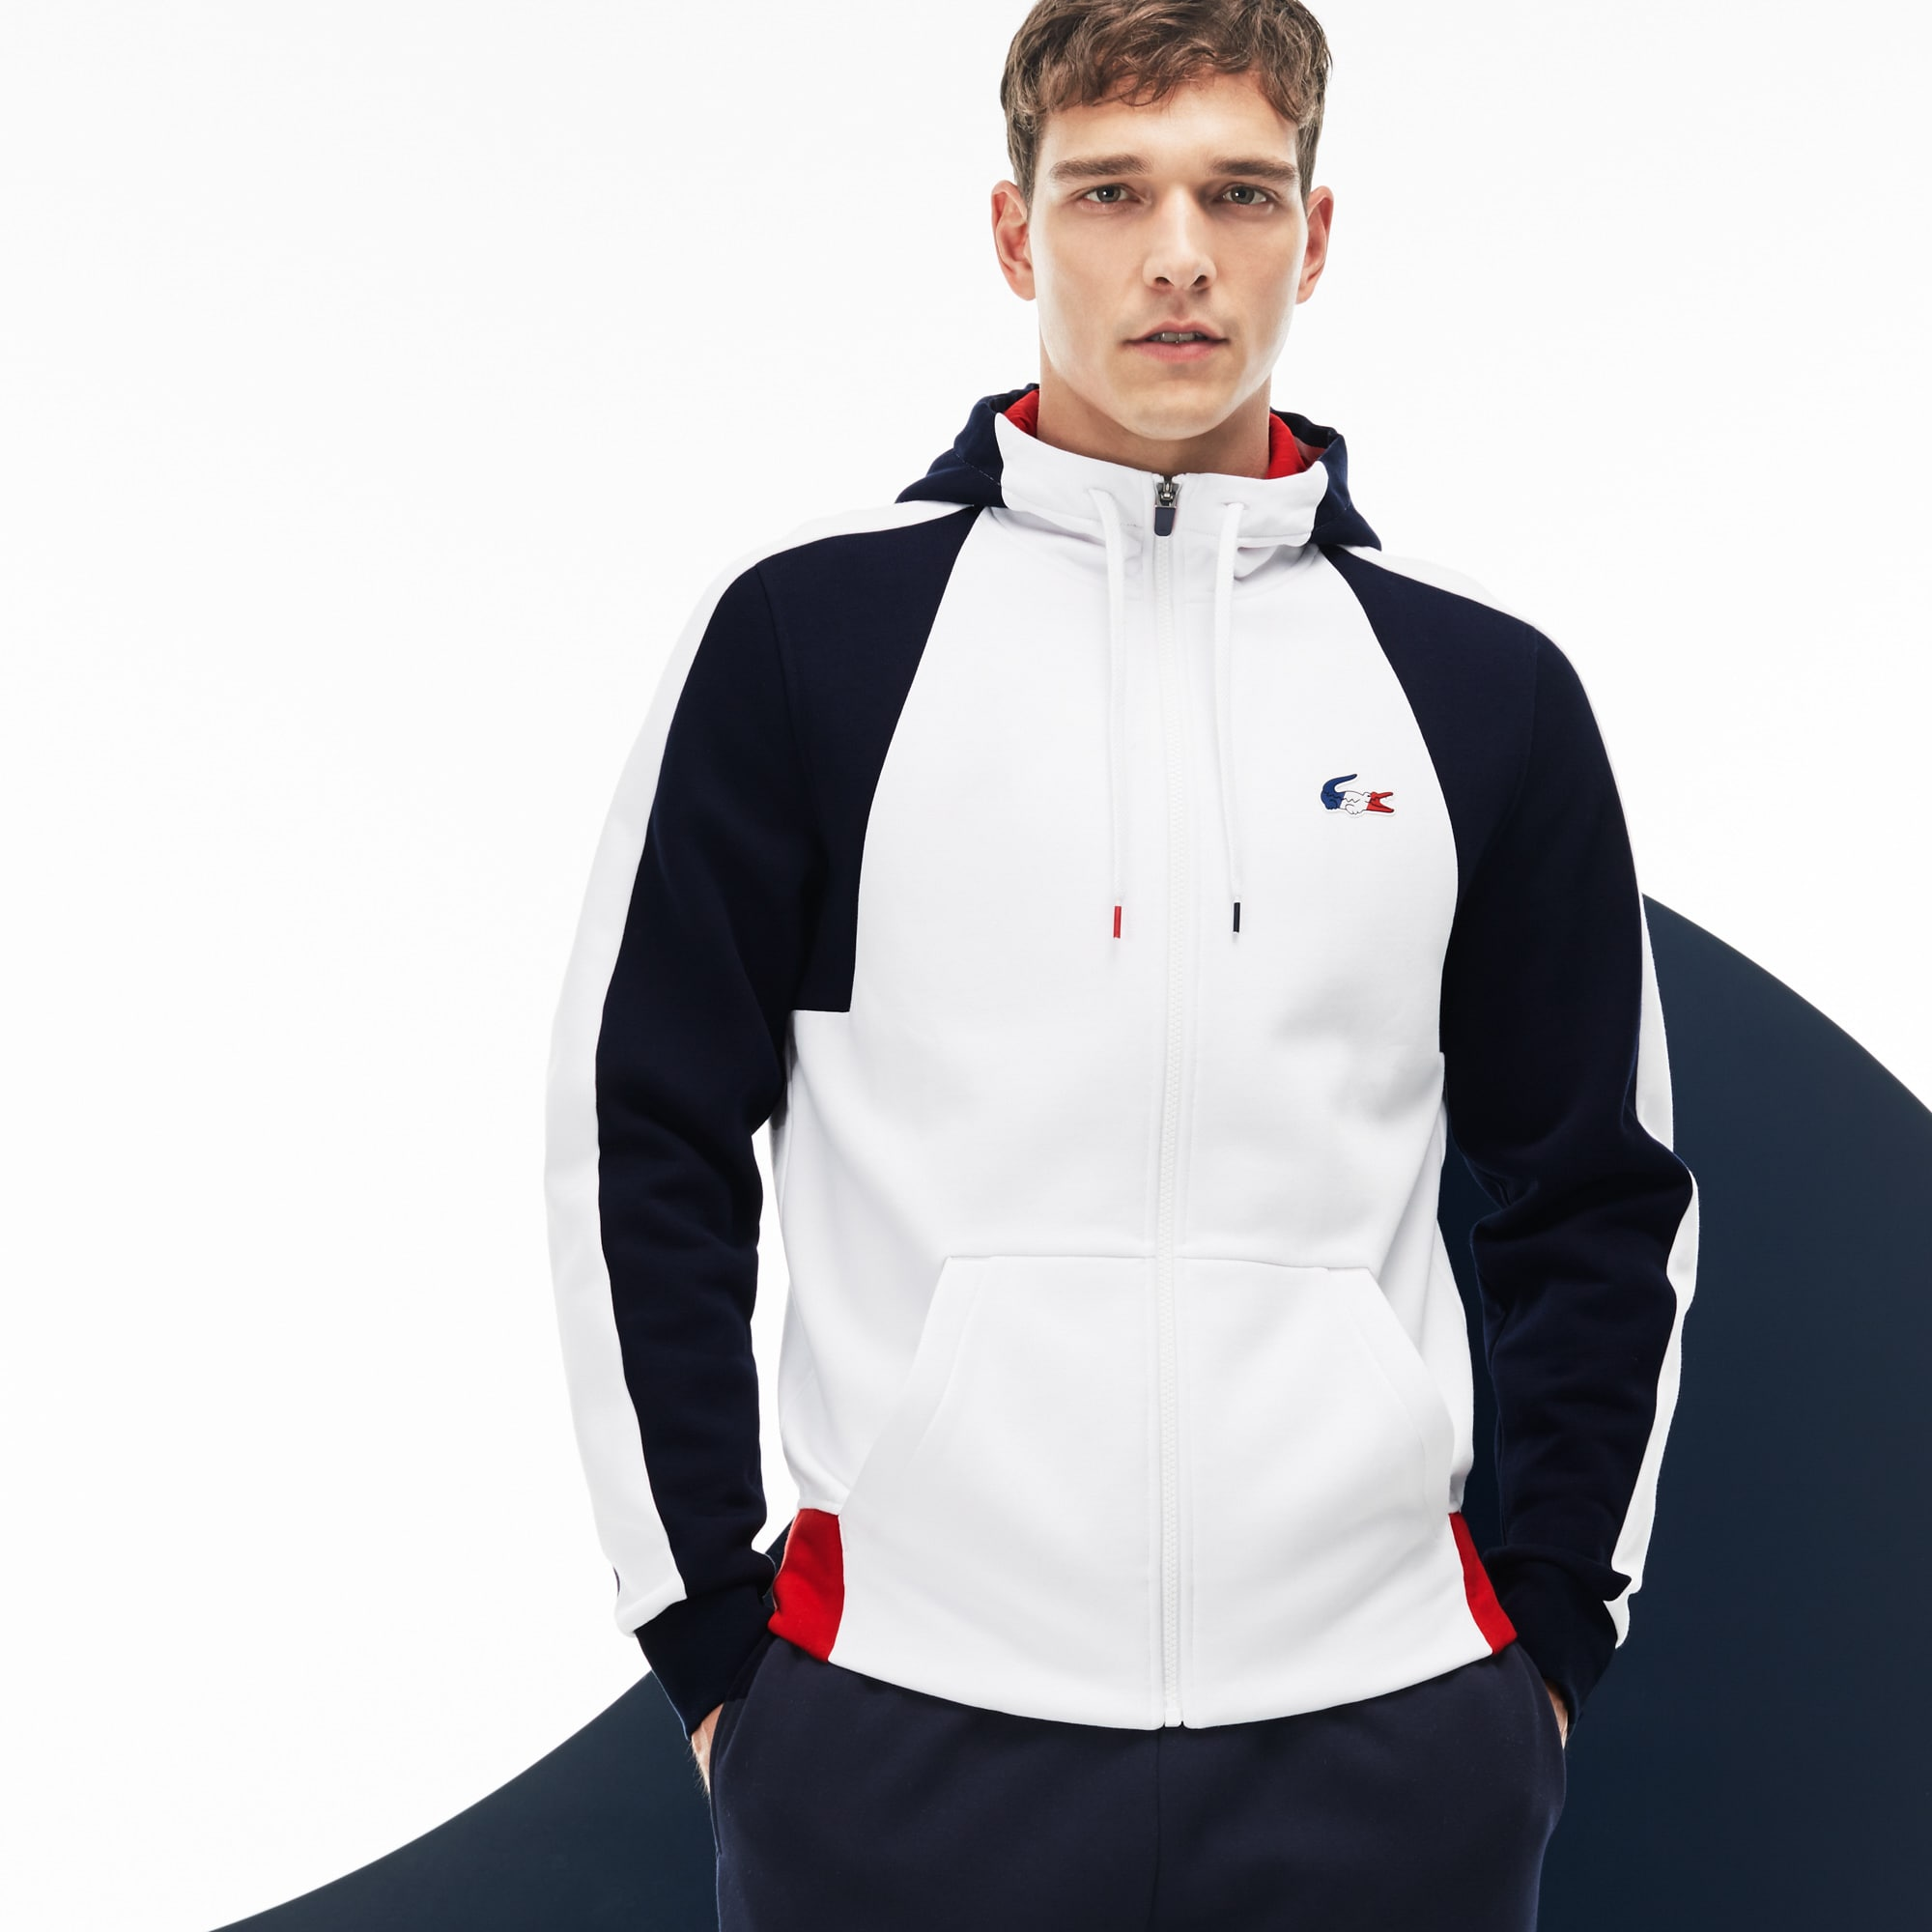 Herren-Sweatshirt aus Fleece LACOSTE SPORT FRENCH SPORTING SPIRIT